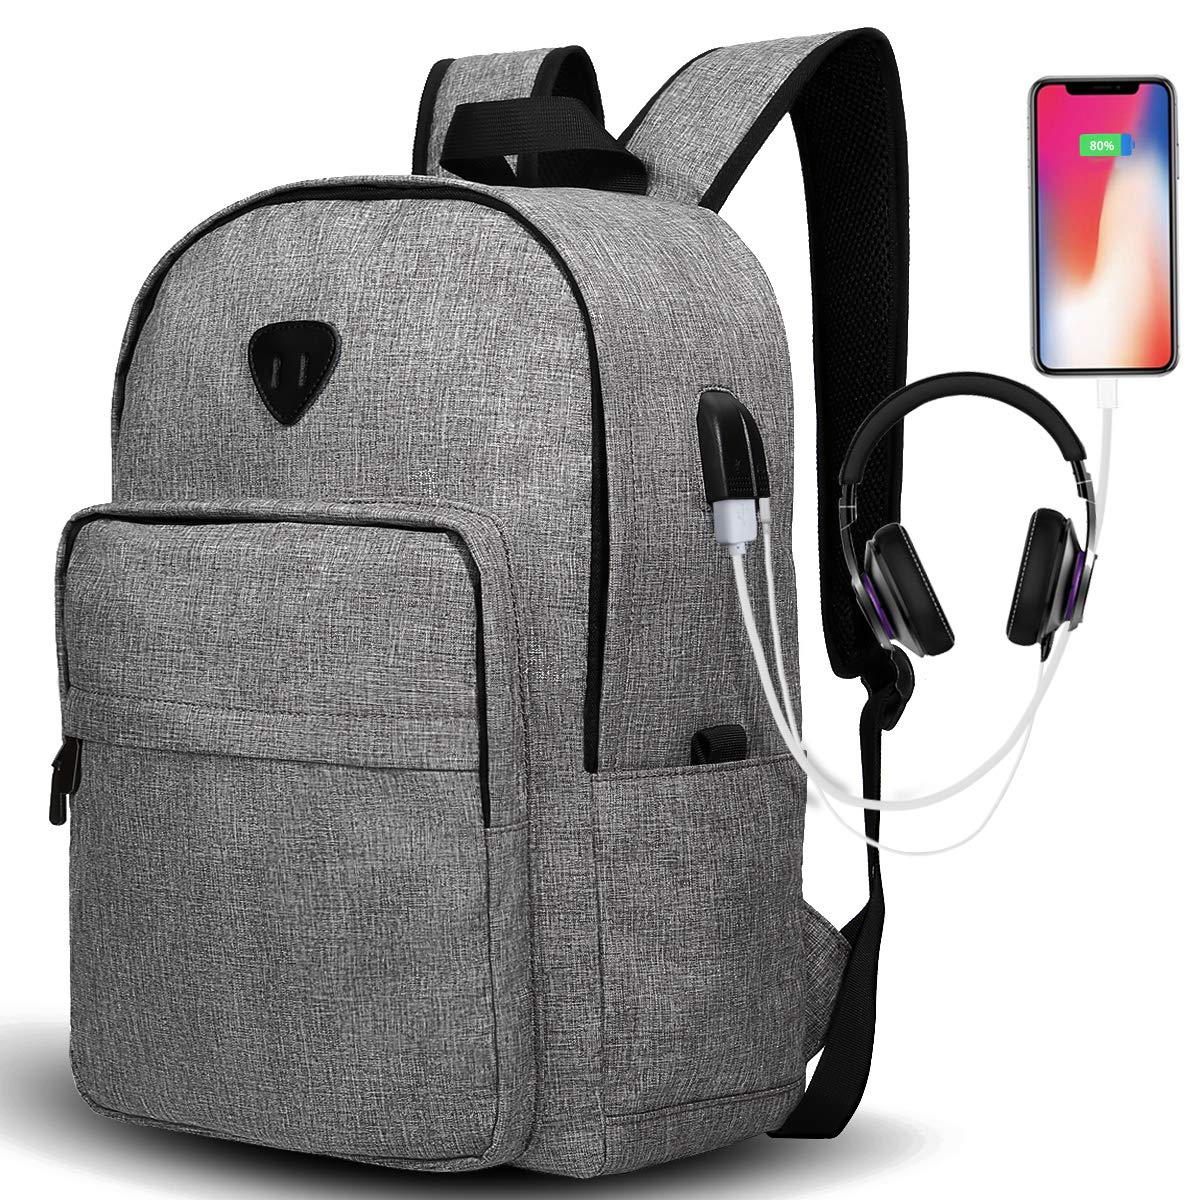 Travel Laptop Backpack, Lightweight Backpack Durable School Laptop Backpack with USB Charging Port Casual Daypack Water Resistant Bookbag for Men and Women Gray